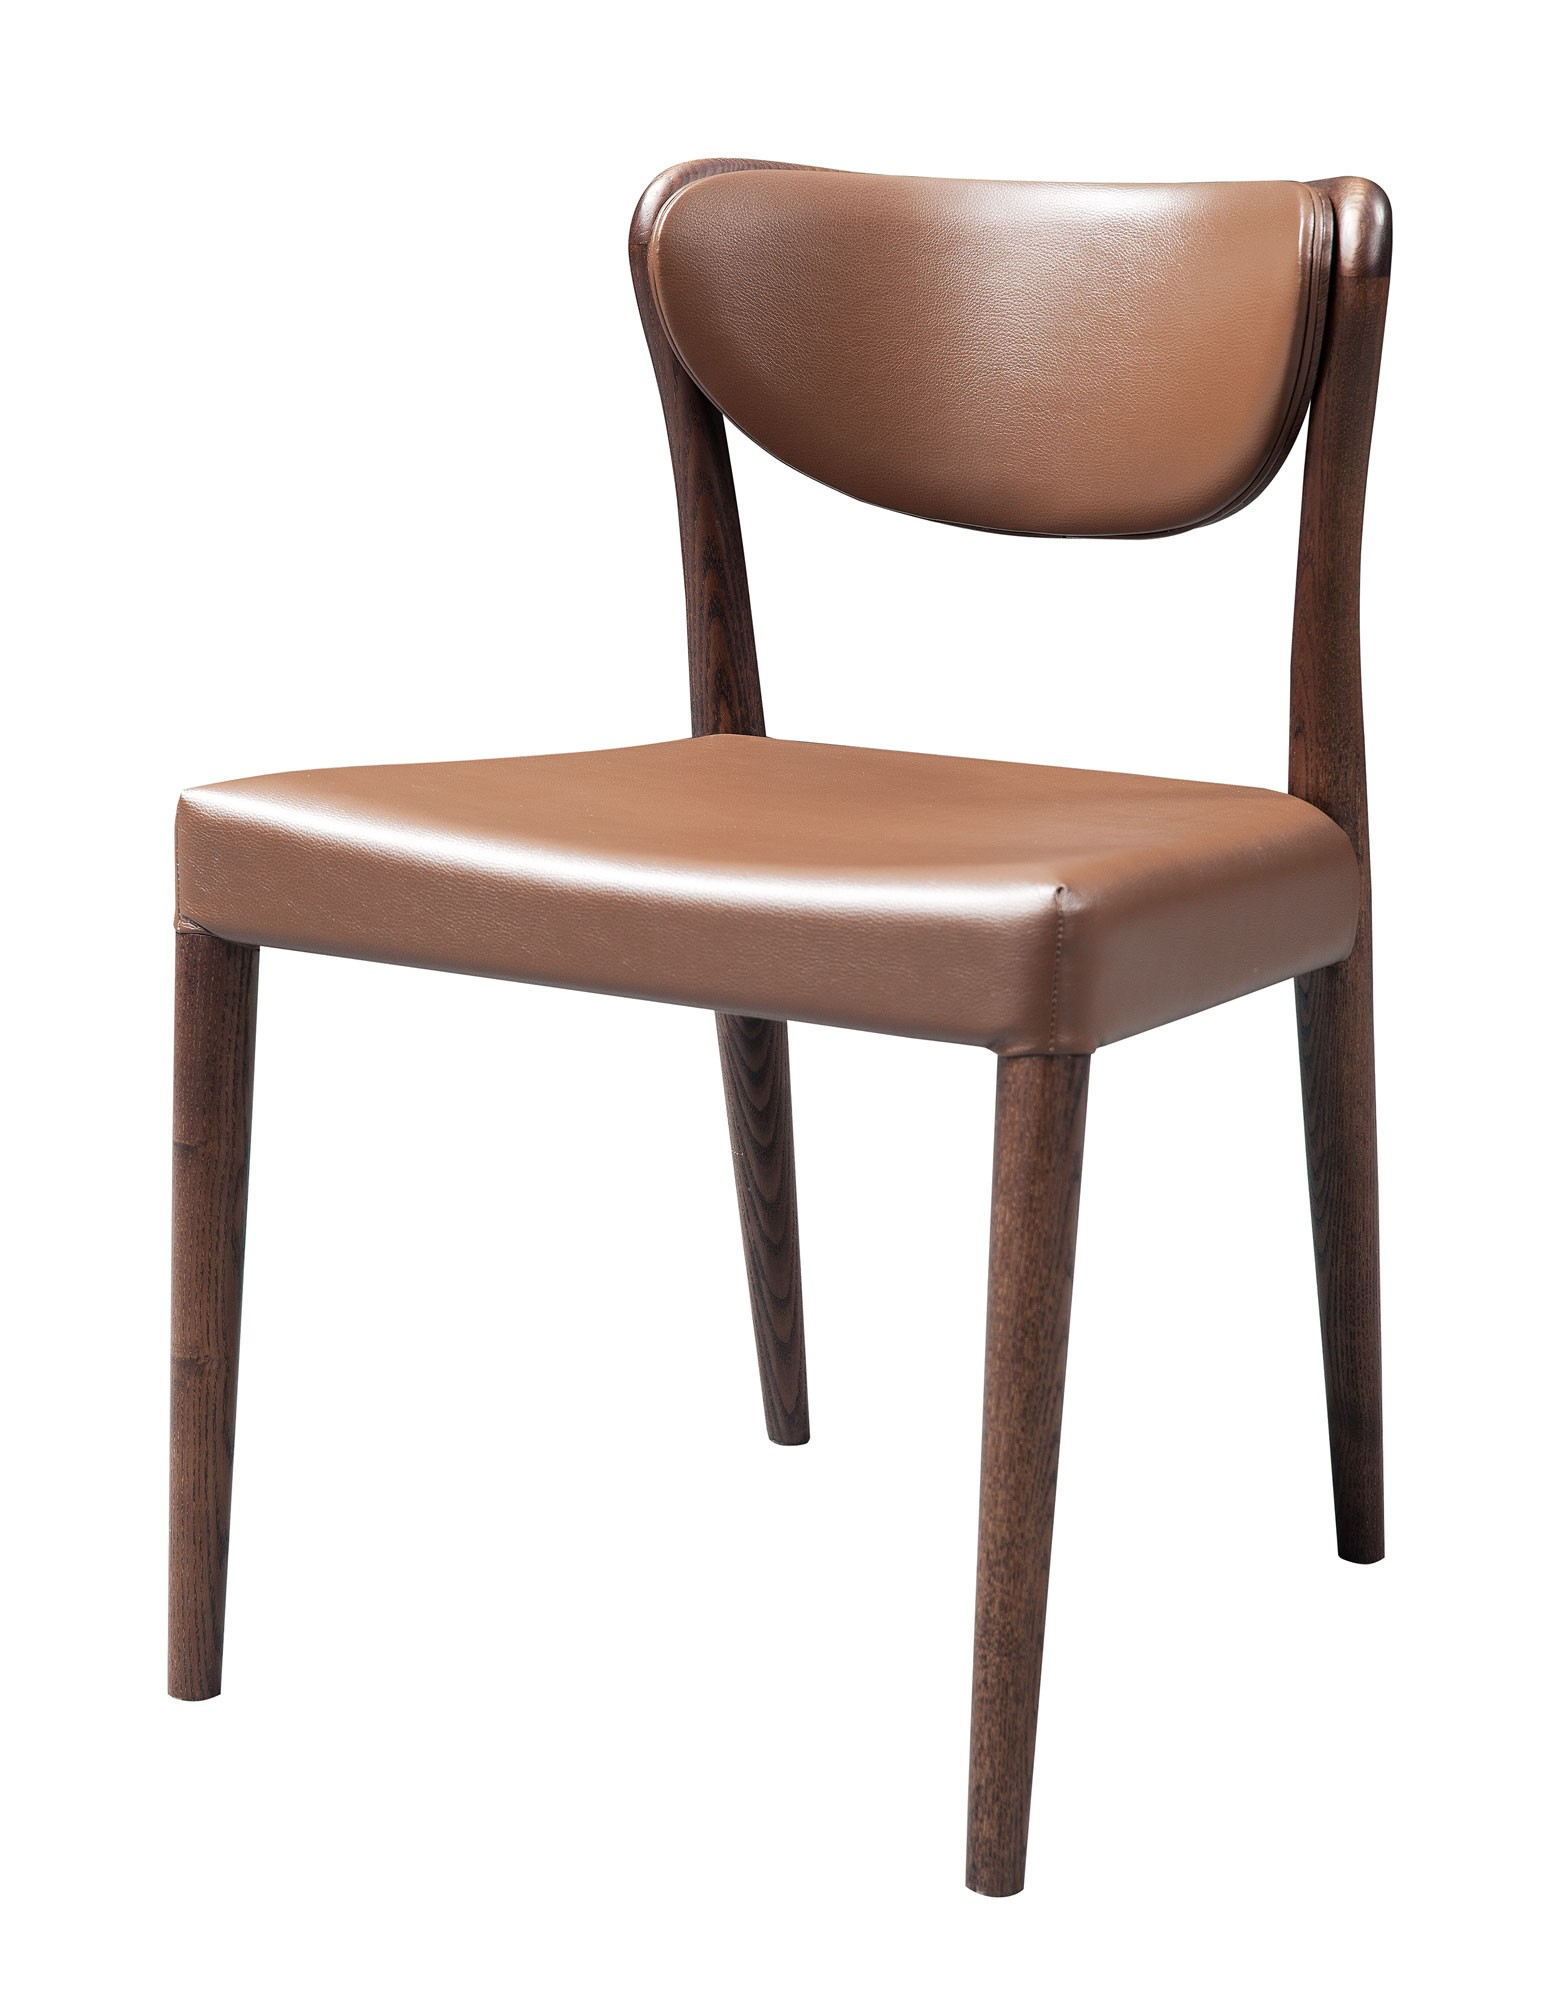 Modern Dining Chairs What Makes A Modern Dining Room Chair Comfortable La